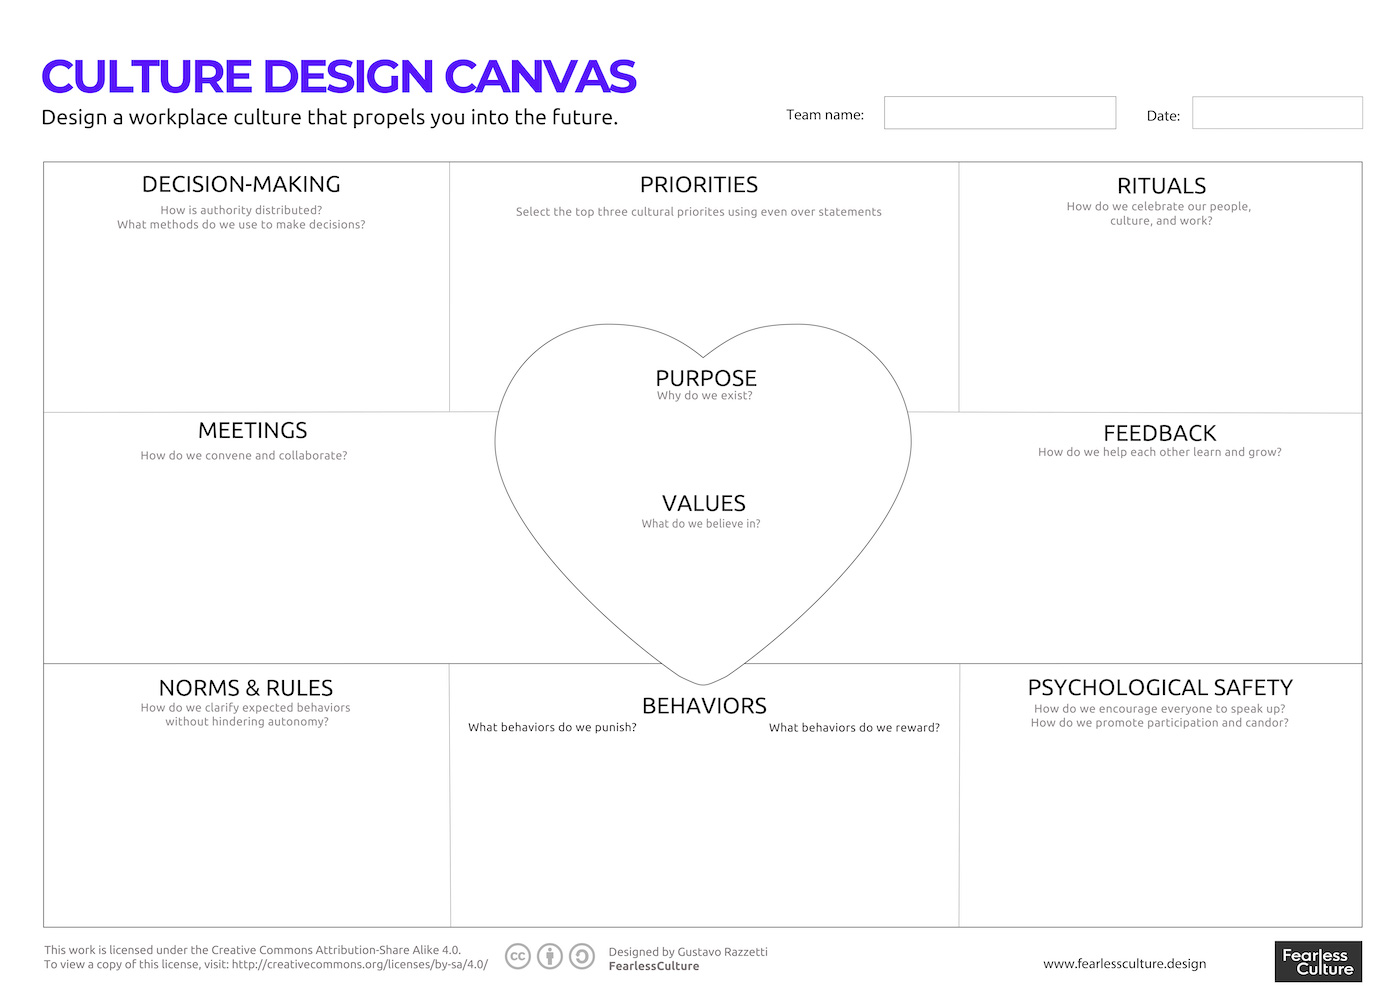 the culture design canvas a visual tool to map your company culture and design future proof workplace cultures